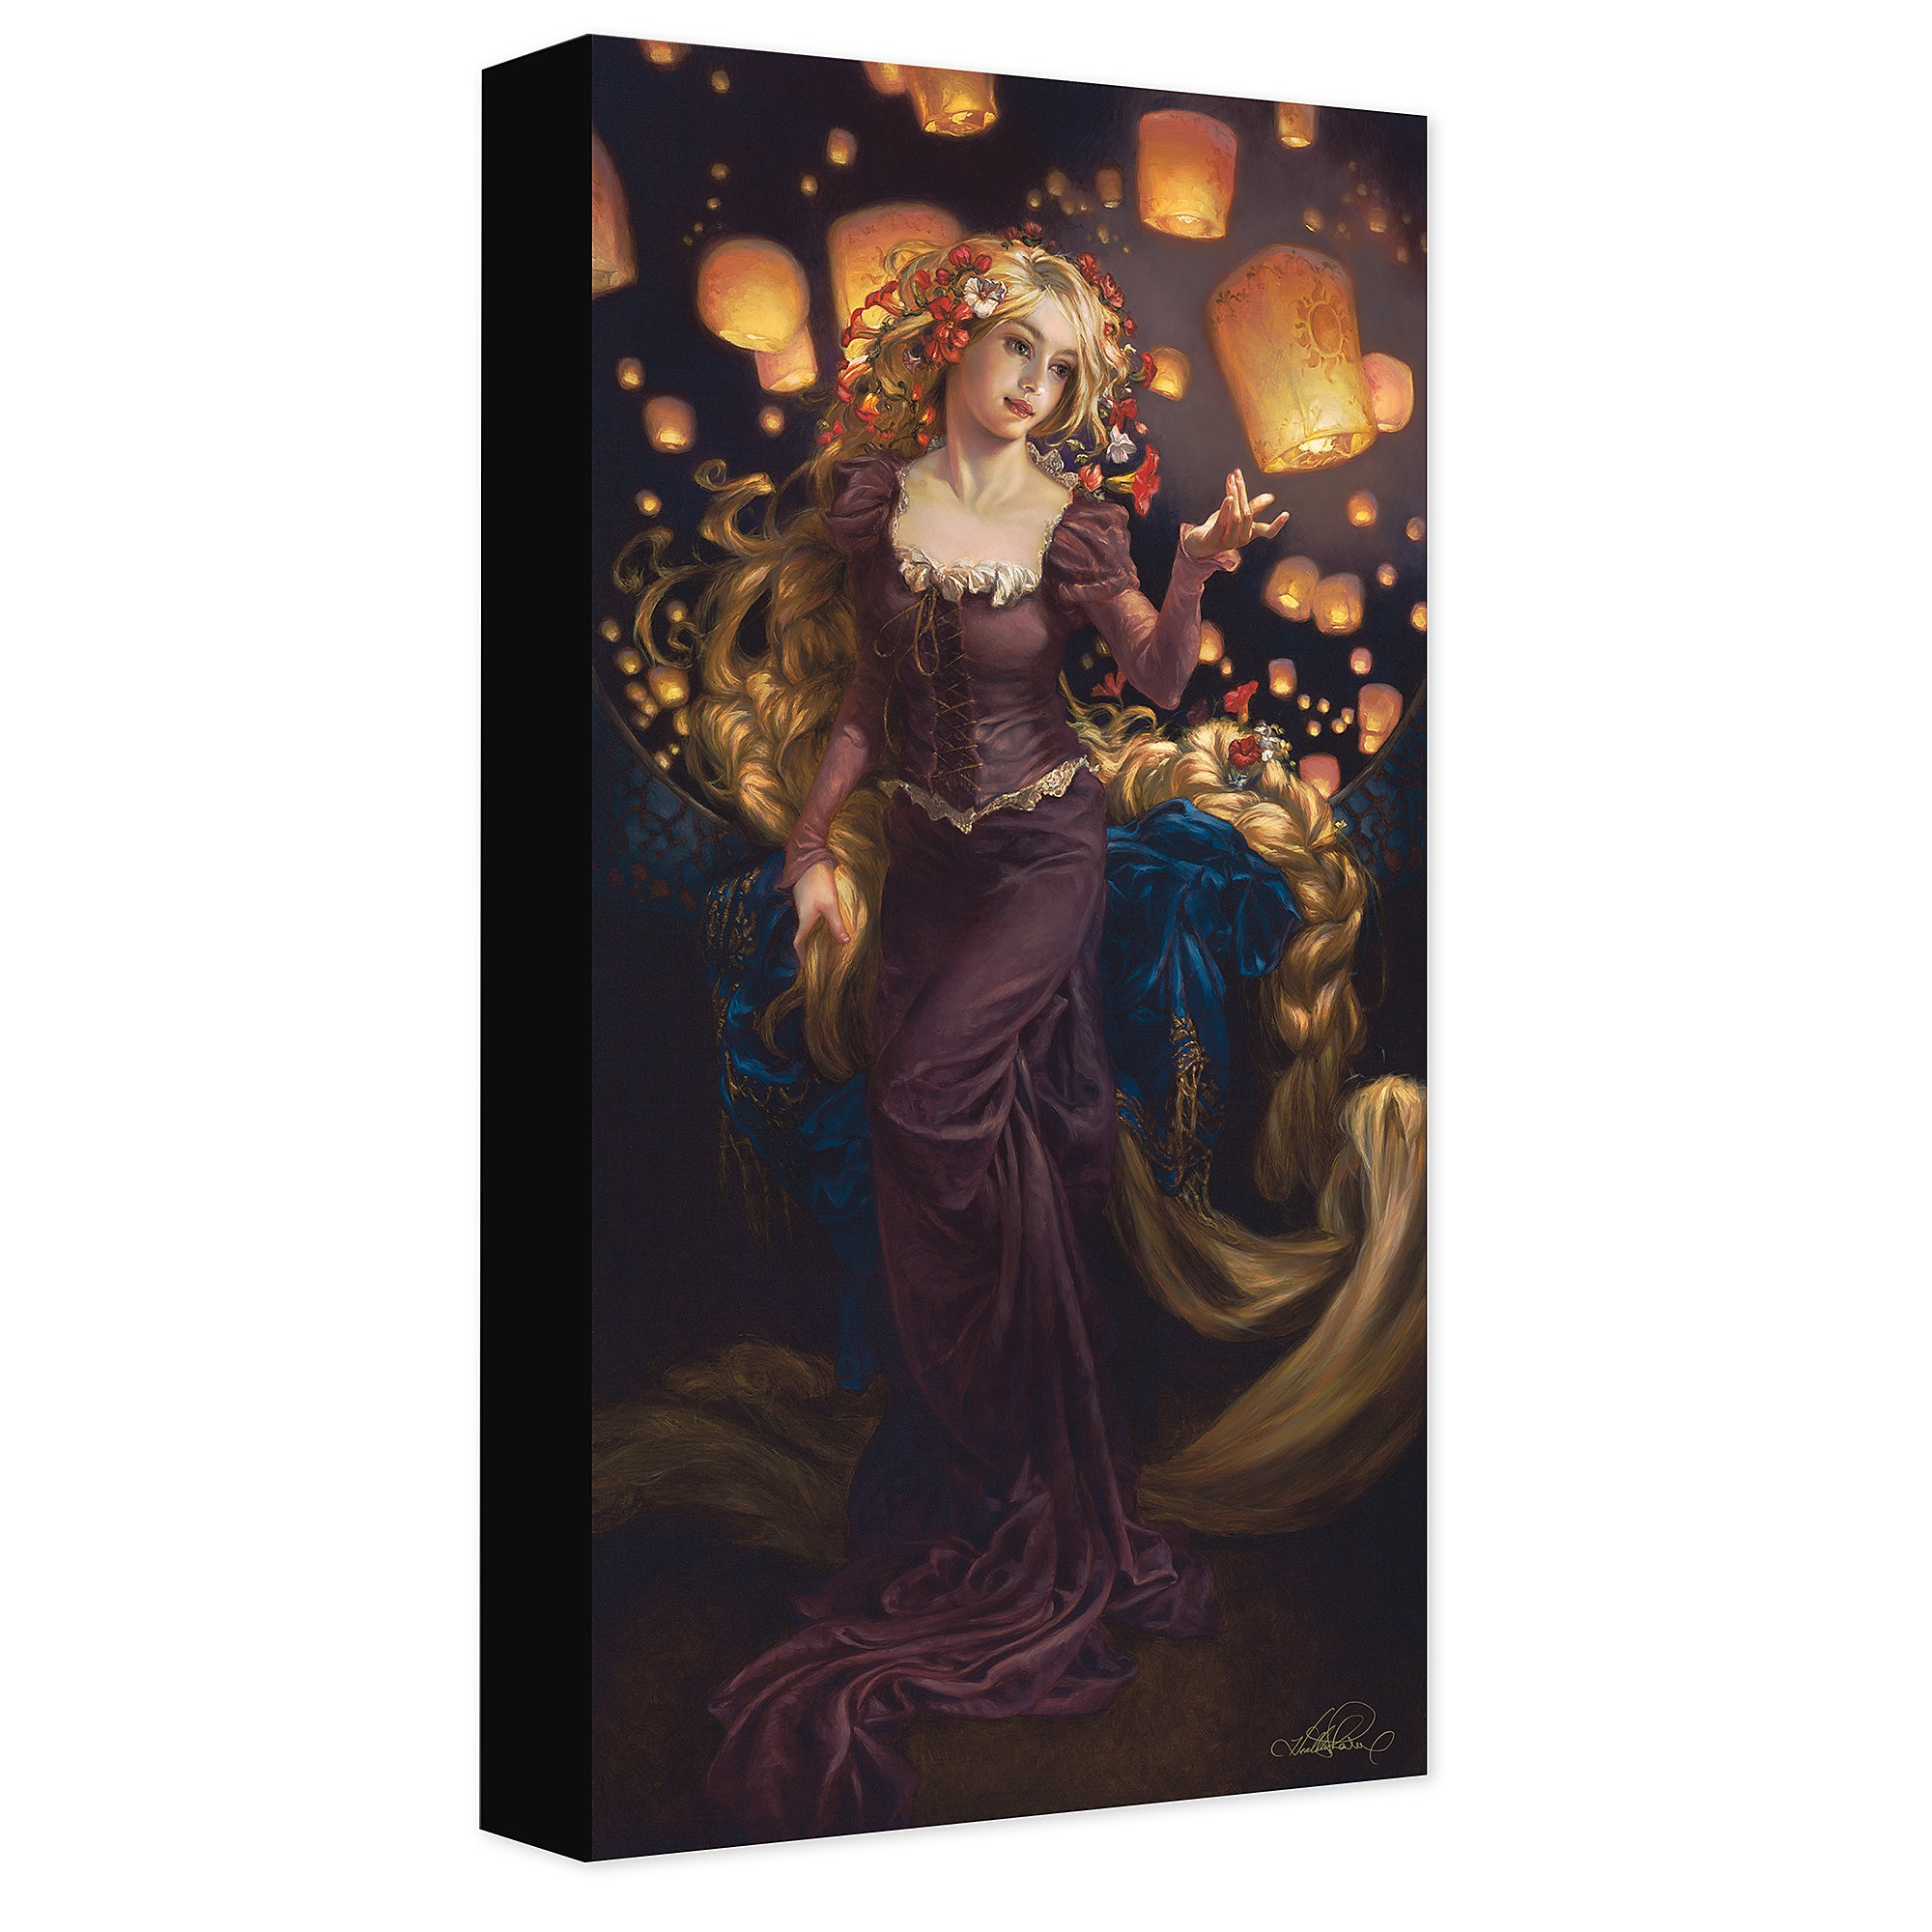 Rapunzel ''I See the Light'' Canvas Giclée on Canvas by Heather Theurer